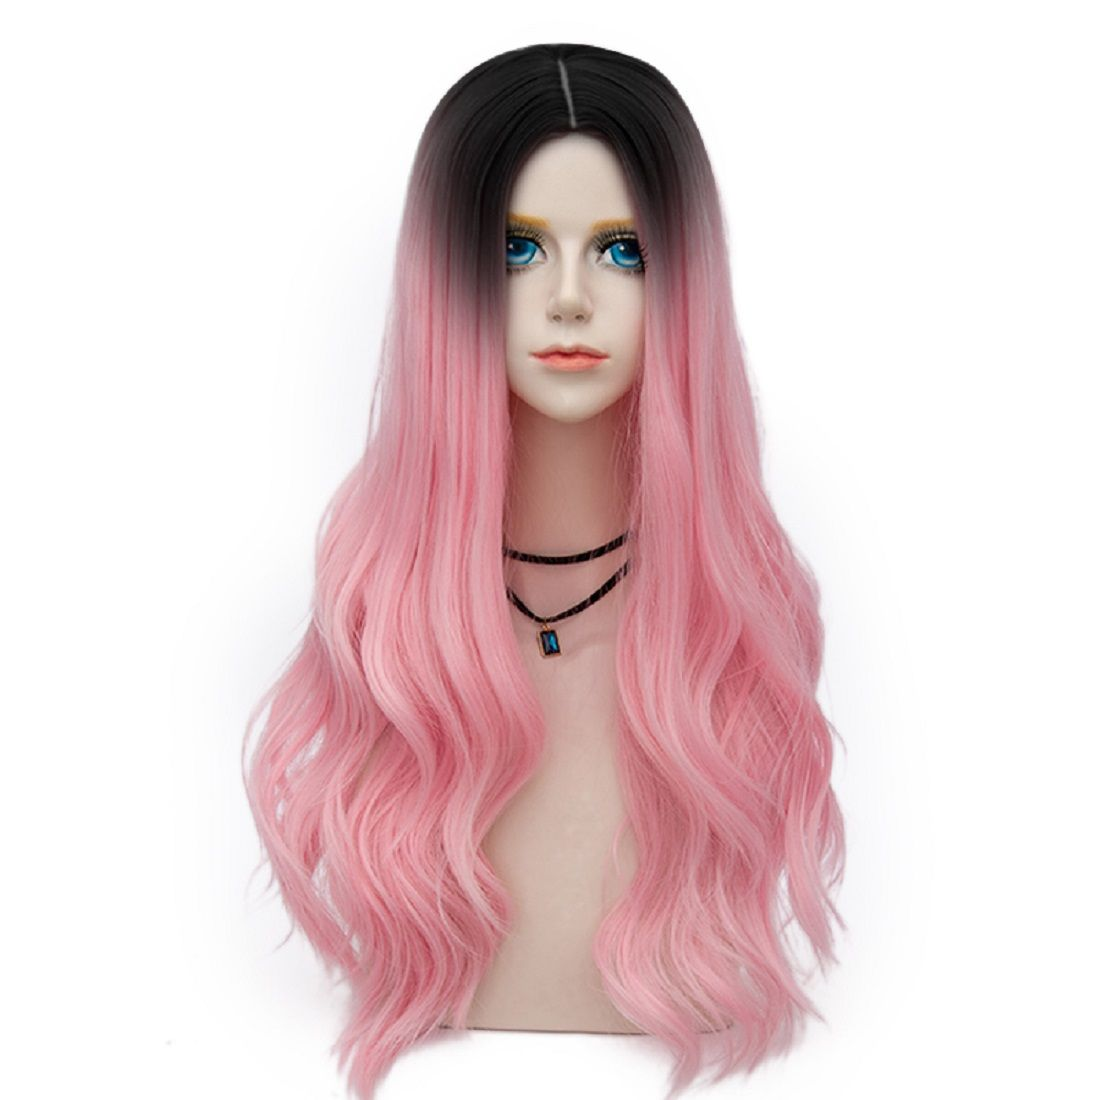 Bombshell Collection 25colors 70cm Long Wavy Synthetic Baby Pink Dark Root Women  Costume Wigs pinkwigs  pinkyhair b5d51c12f